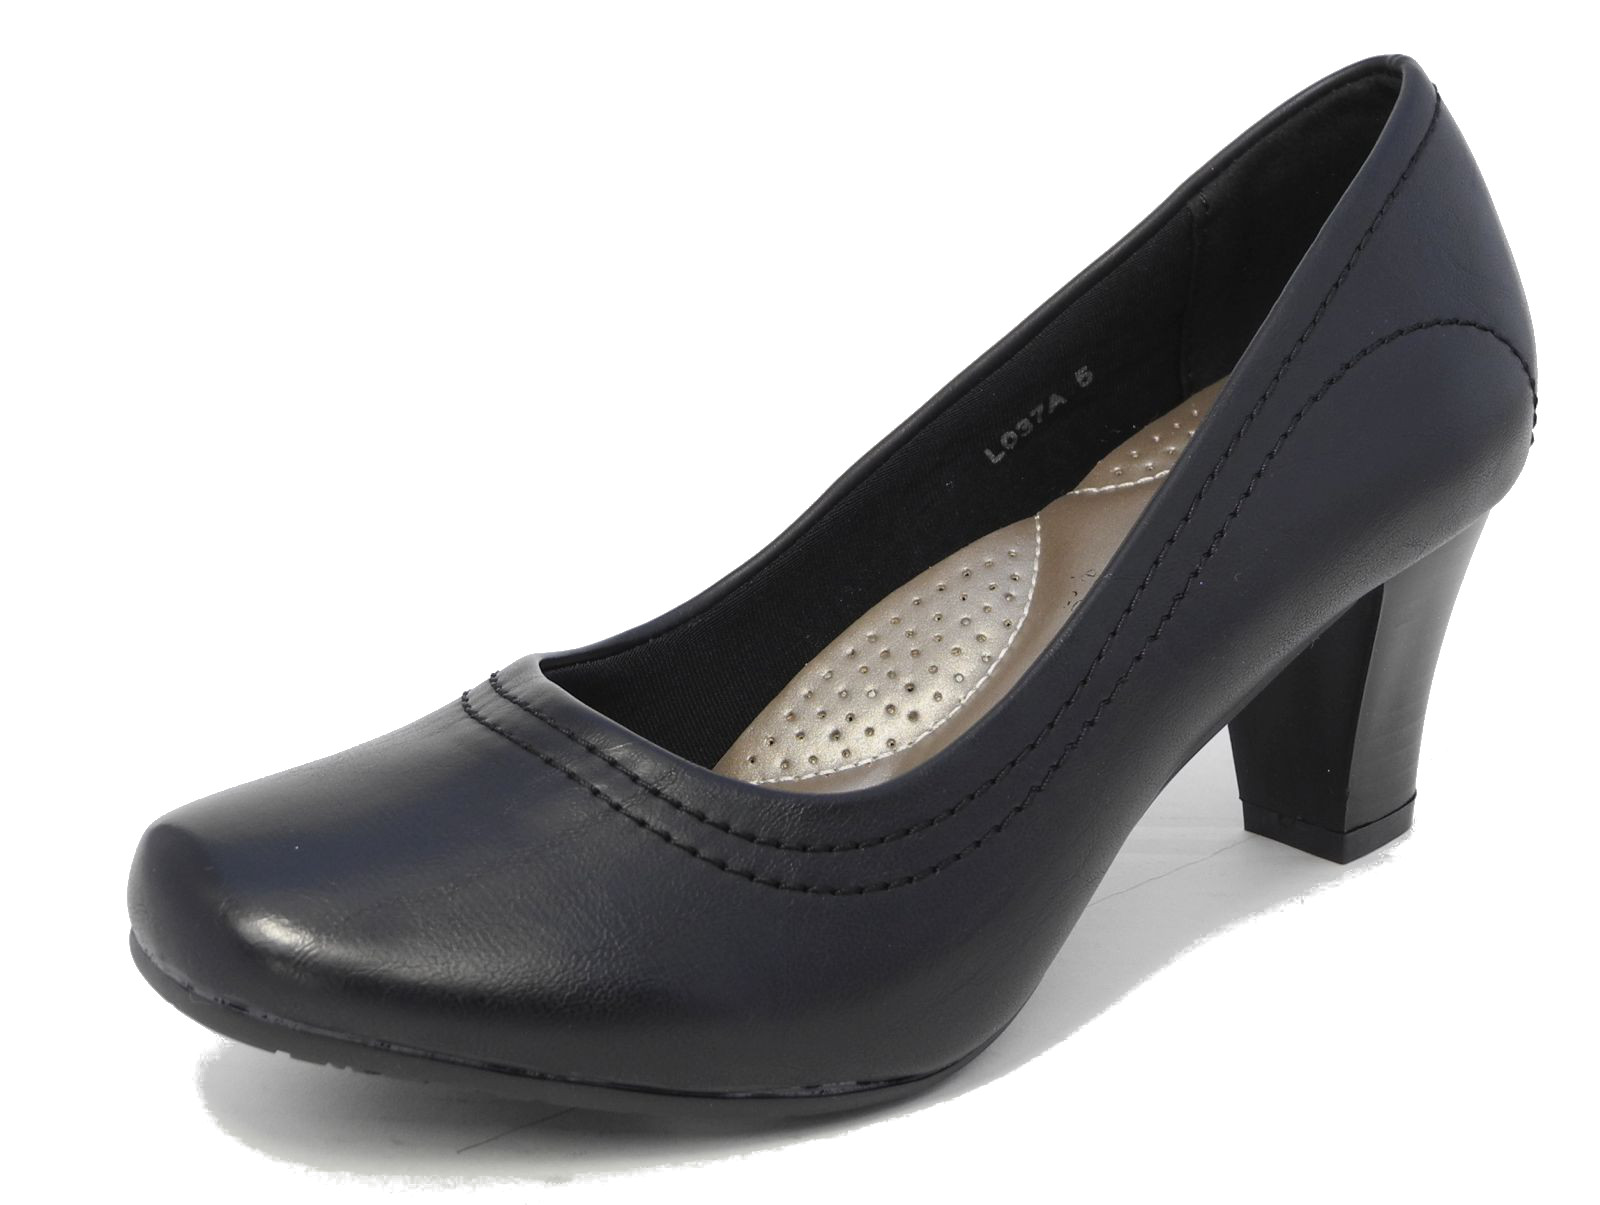 Chanel Pre-owned Patent Leather Court Shoes - Satin heels with patent leather buckles on the shoe. The sole shows signs of wear. The heels are lightly scratched.